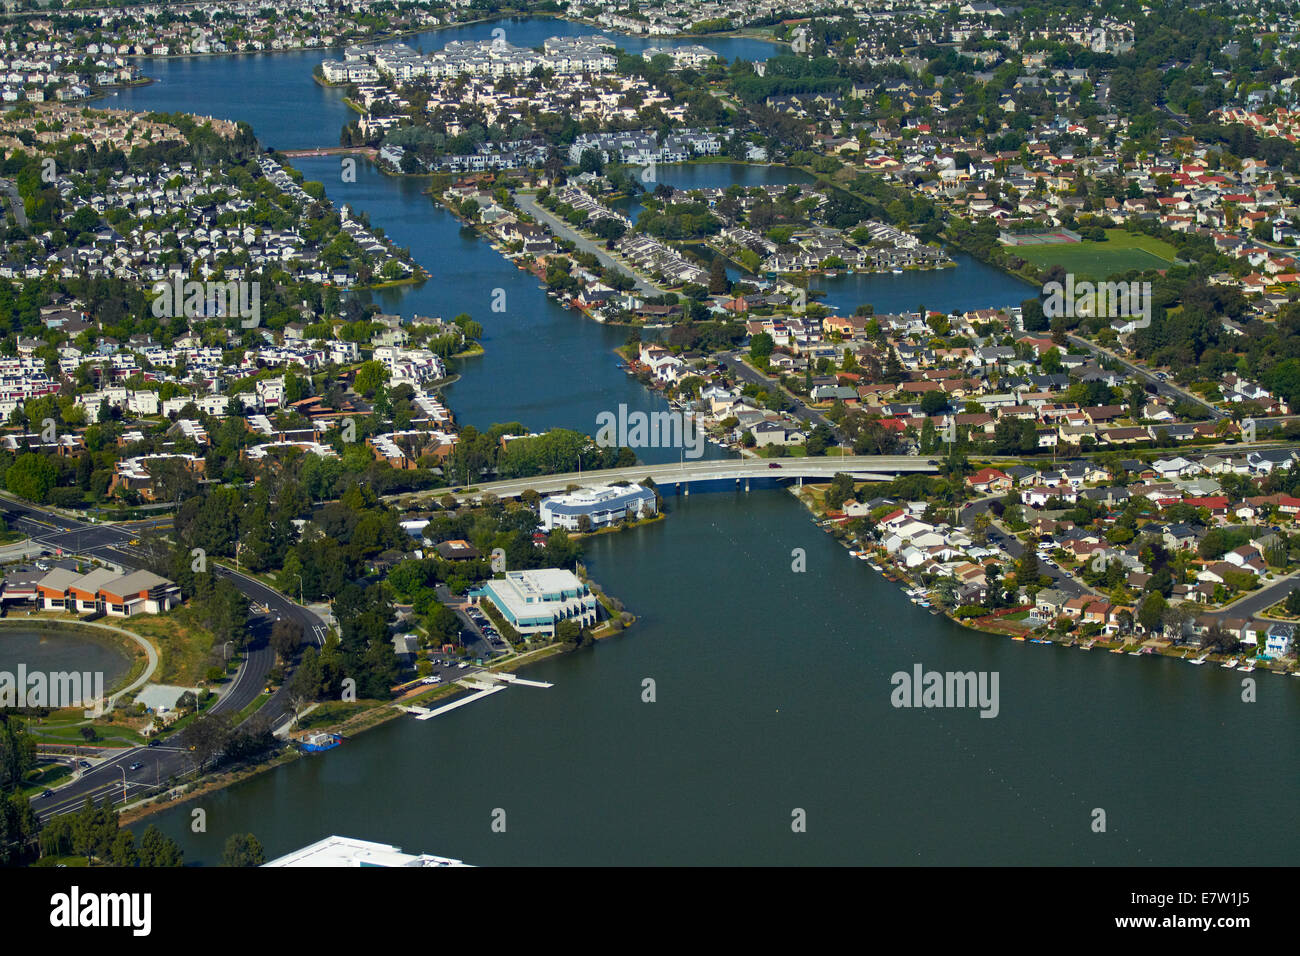 Waterways at Redwood Shores, Redwood City, San Francisco, California, USA - aerial - Stock Image